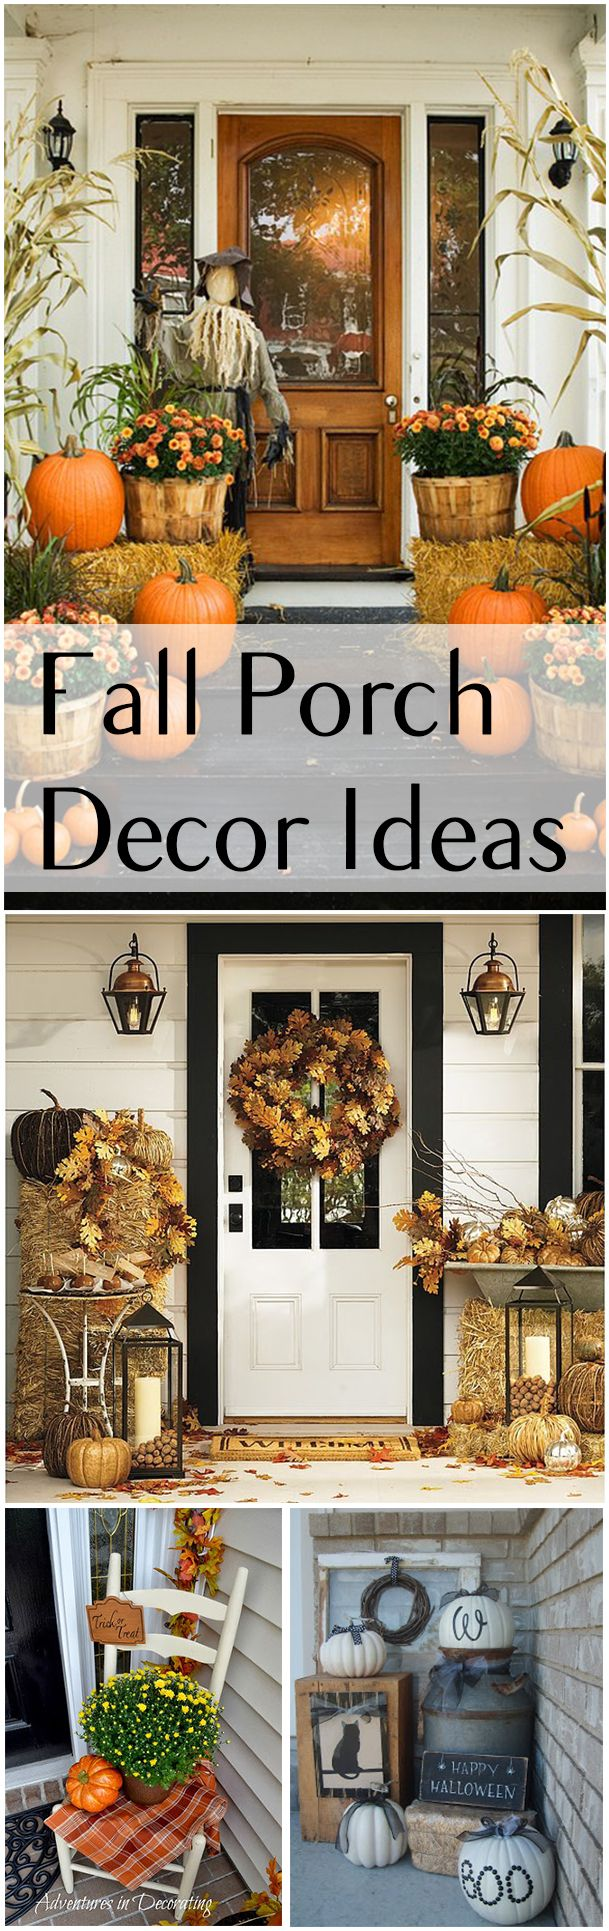 Outdoor fall decorating ideas front porch - Outdoor Fall Decorating Ideas Front Porch